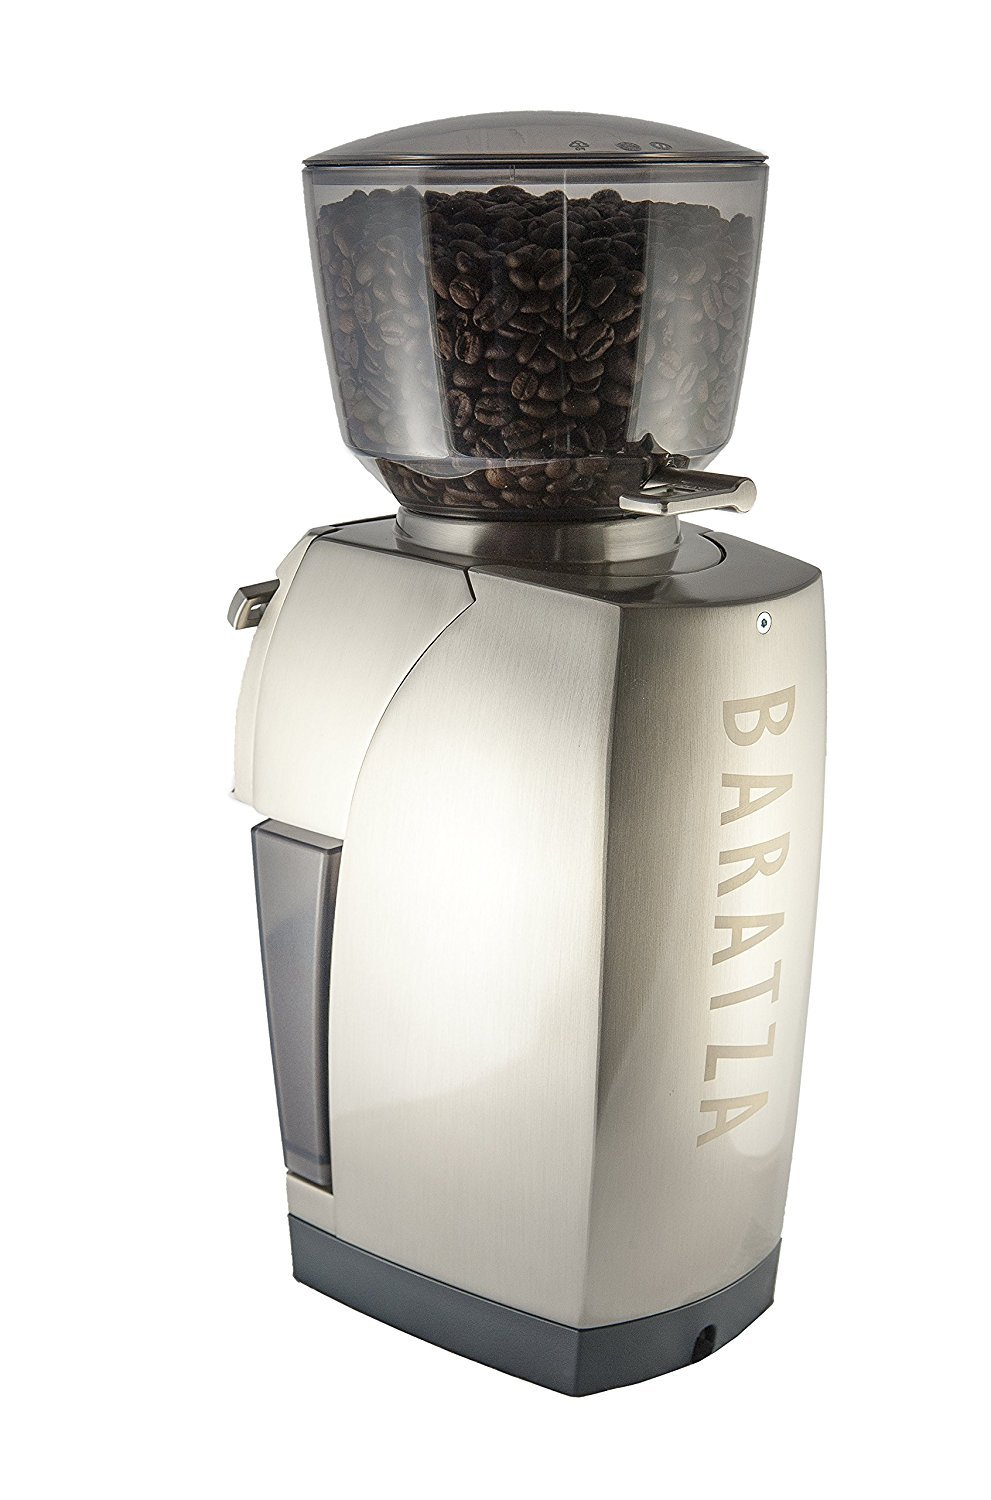 Baratza Forte BG (Brew Grinder) - Flat Steel Burr Commercial Grade Coffee Grinder, Brushtech Coffee Grinder Dusting Brush & Zonoz One-Tablespoon Plastic Clever Scoop (Bundle) by Baratza (Image #3)